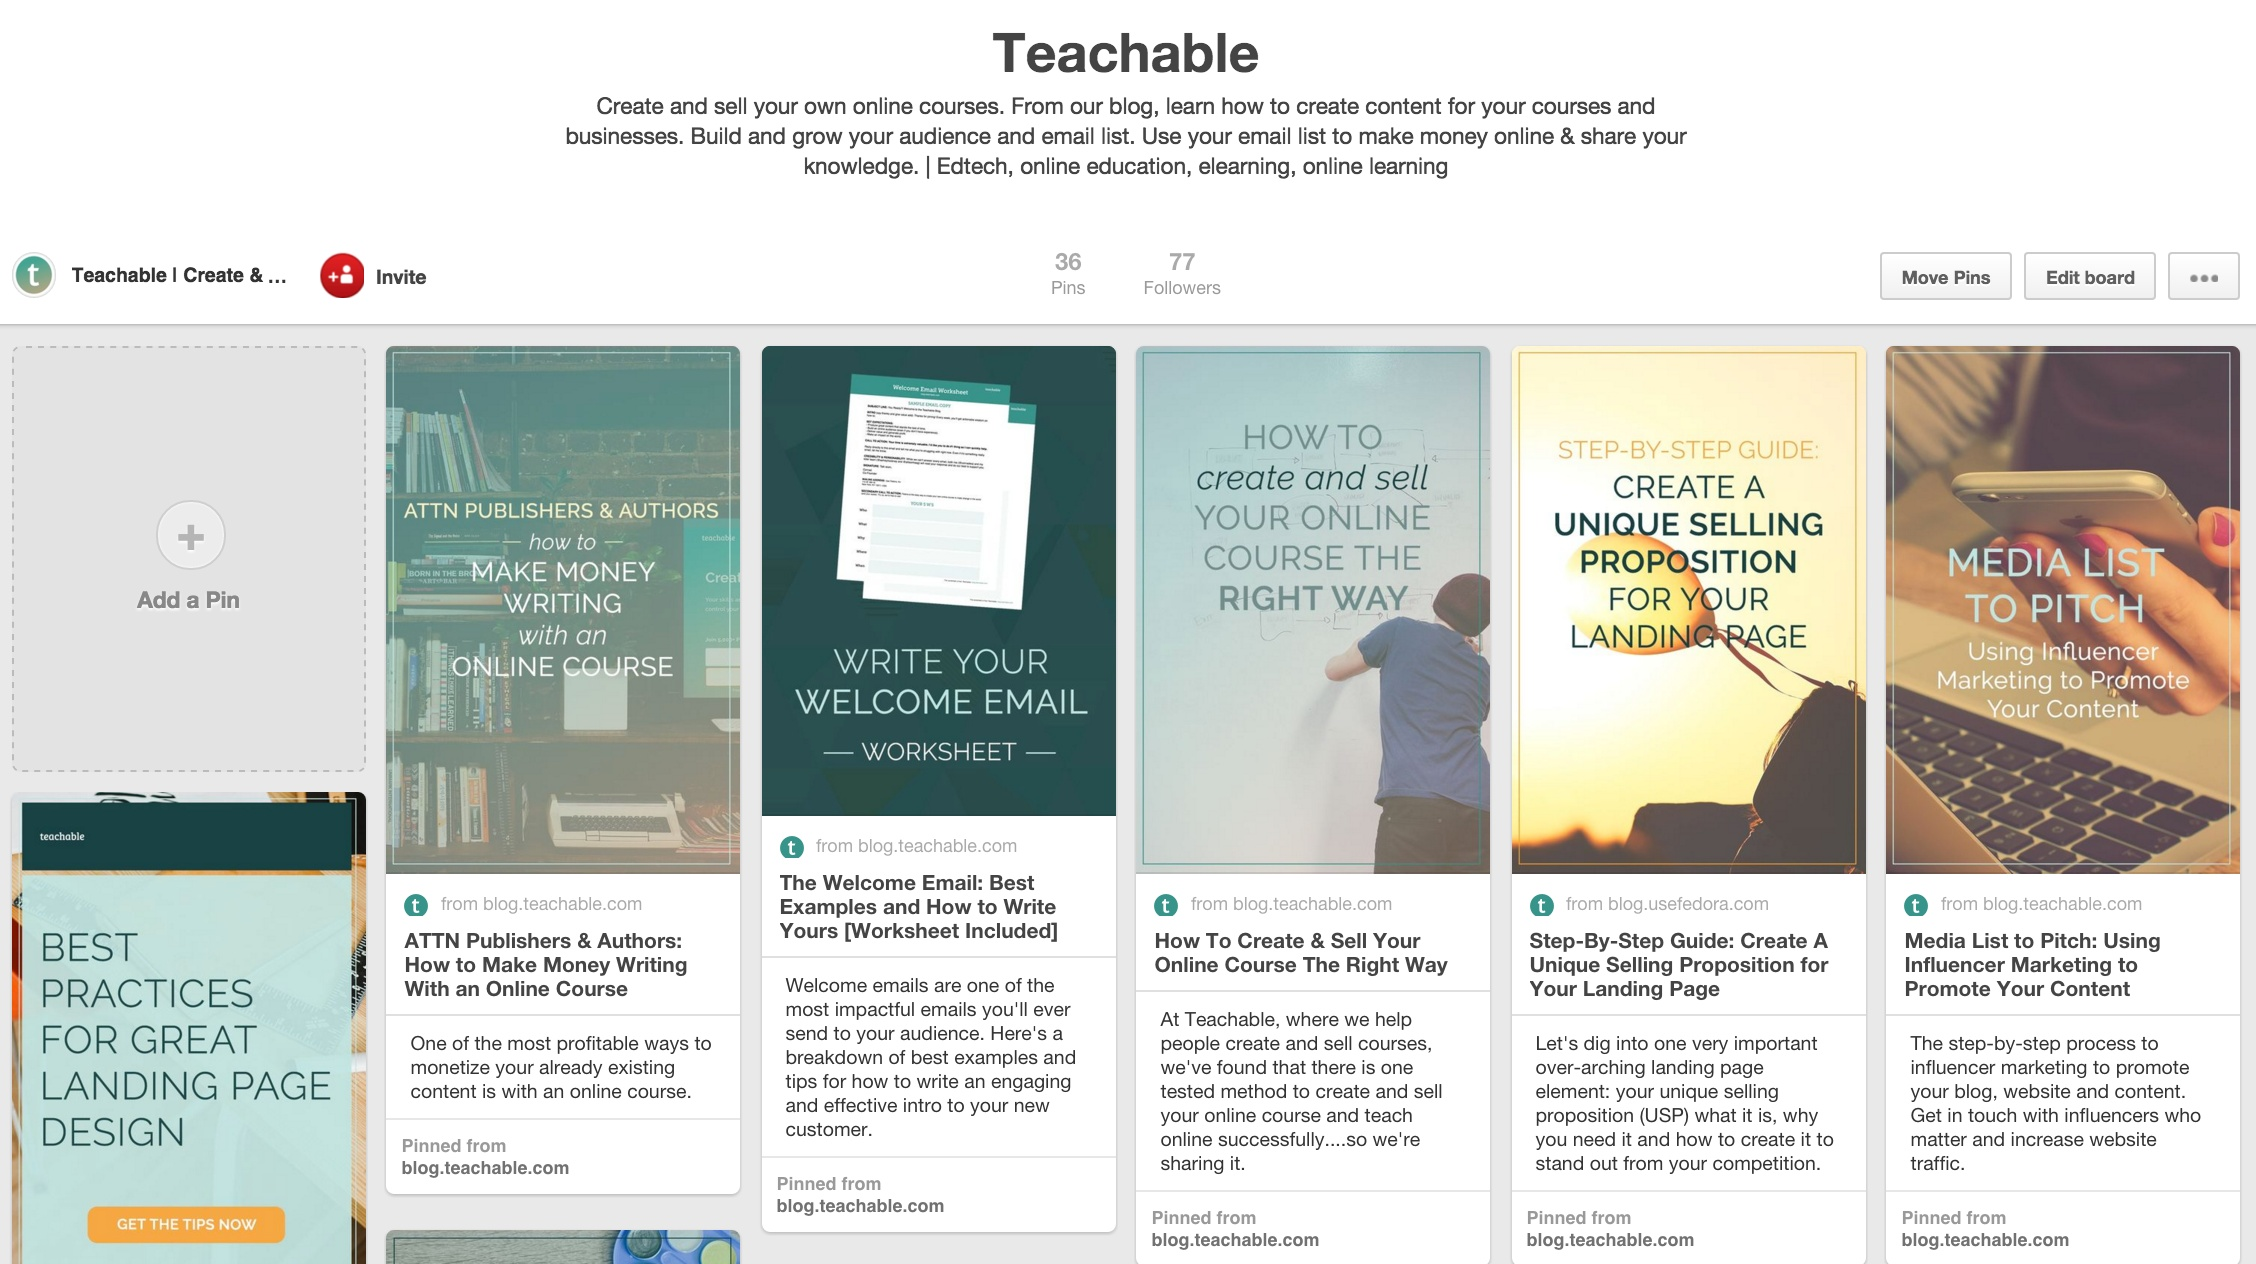 teachable-pinterest-board